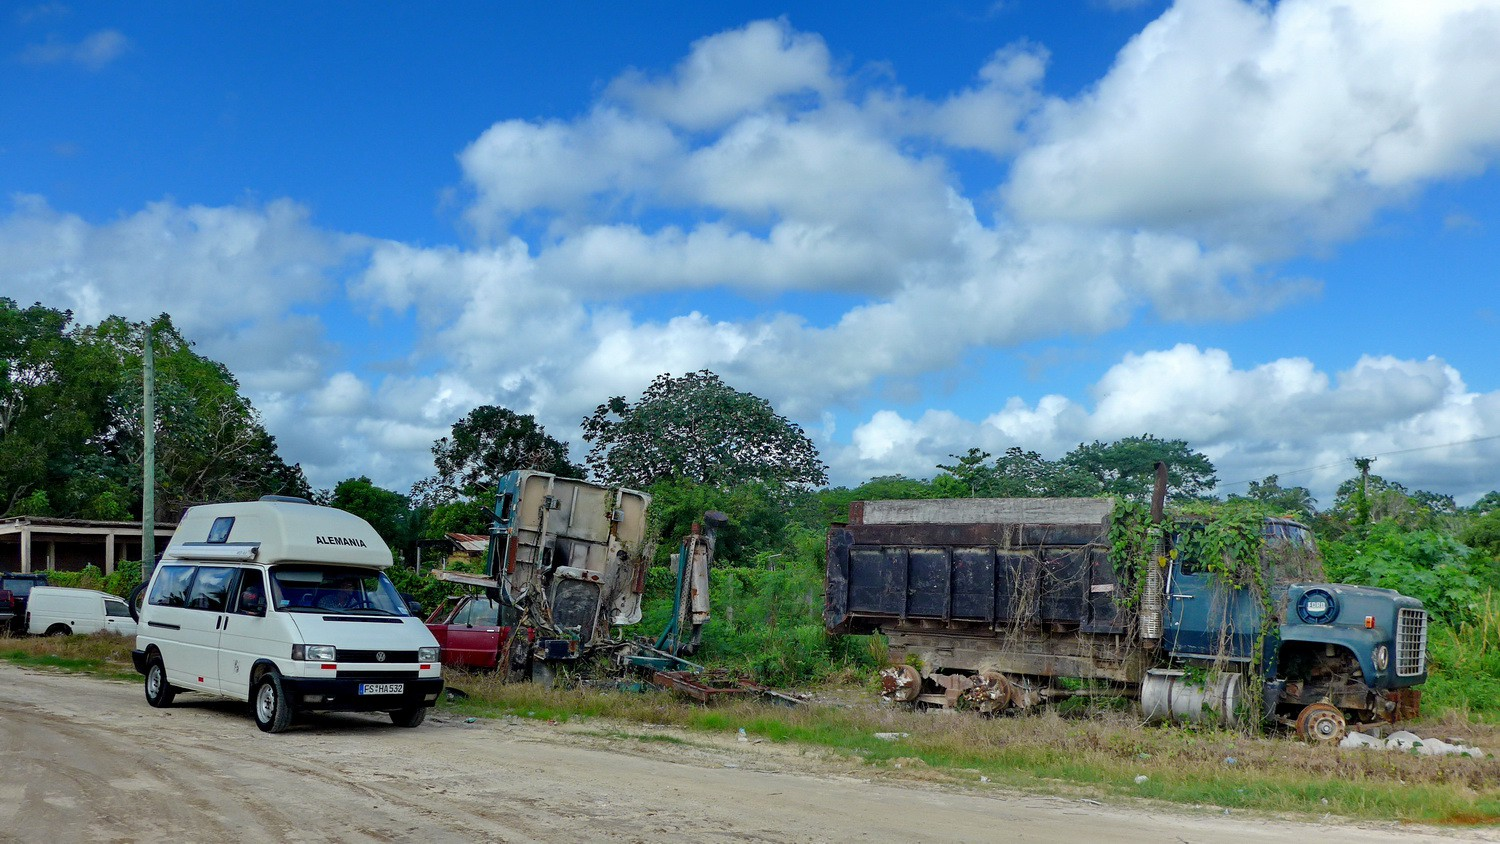 Trucks on the Northern Highway of Belize